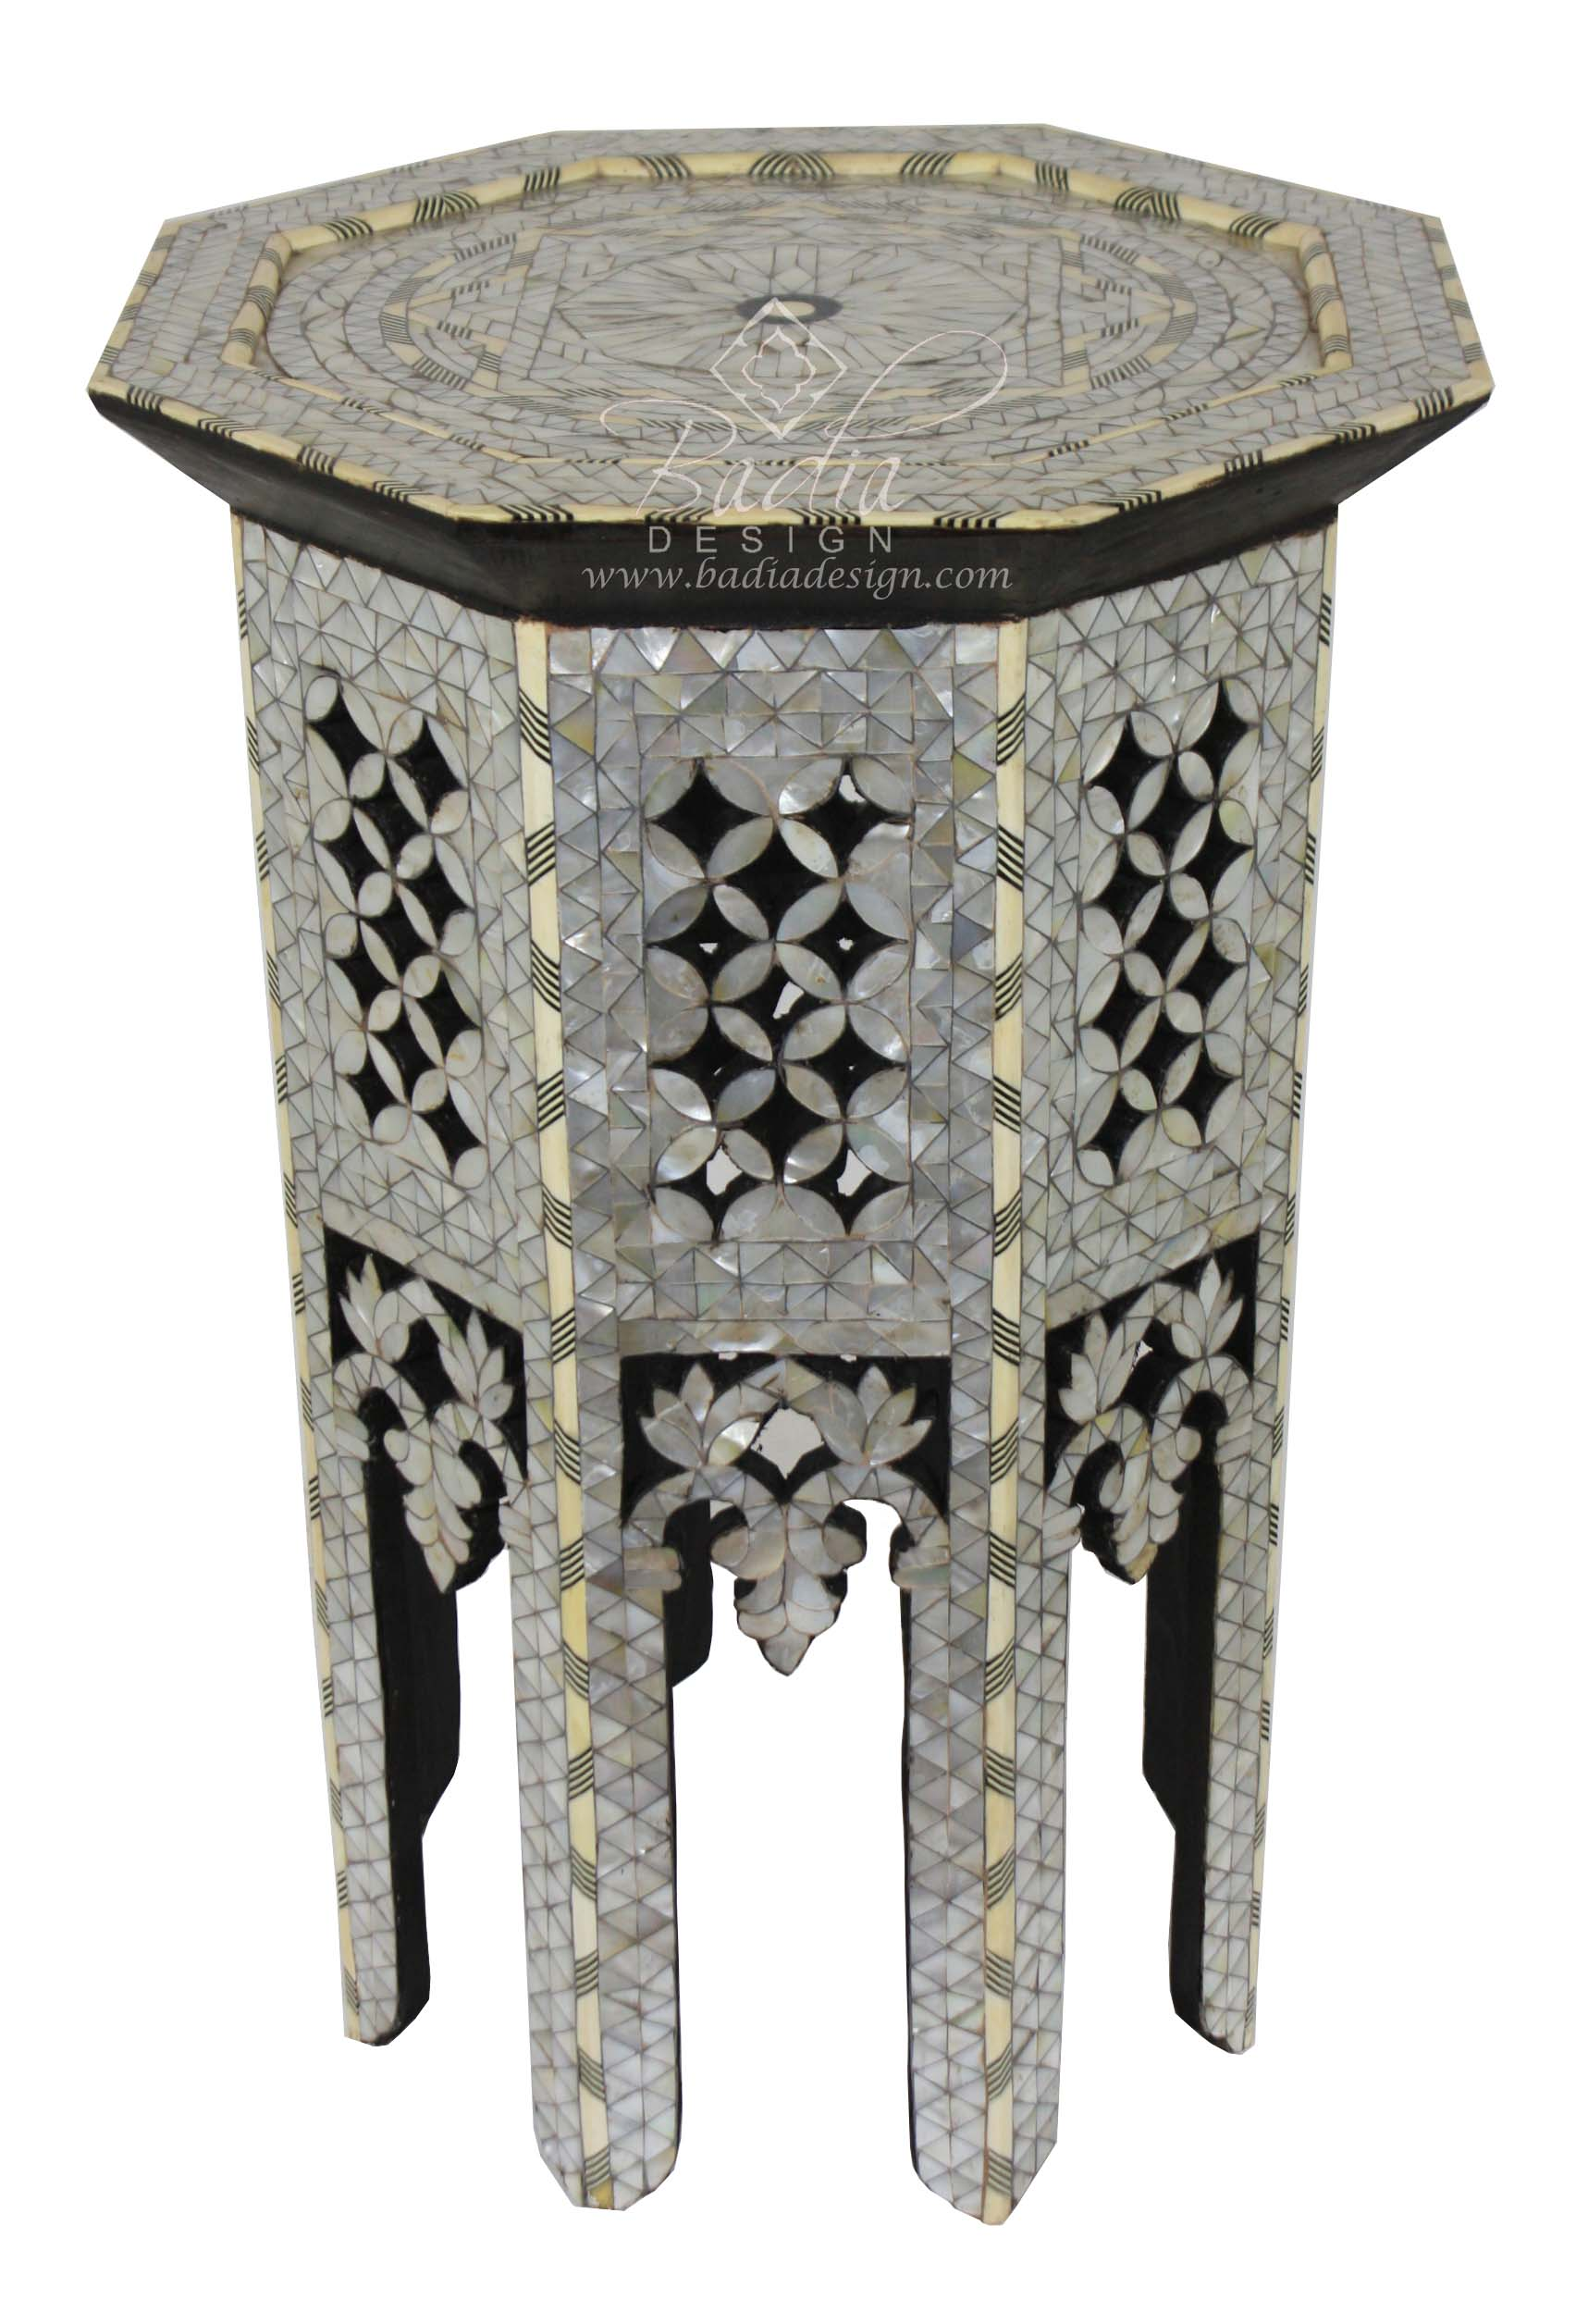 moroccan-white-mother-of-pearl-side-table-mop-st089-1.jpg